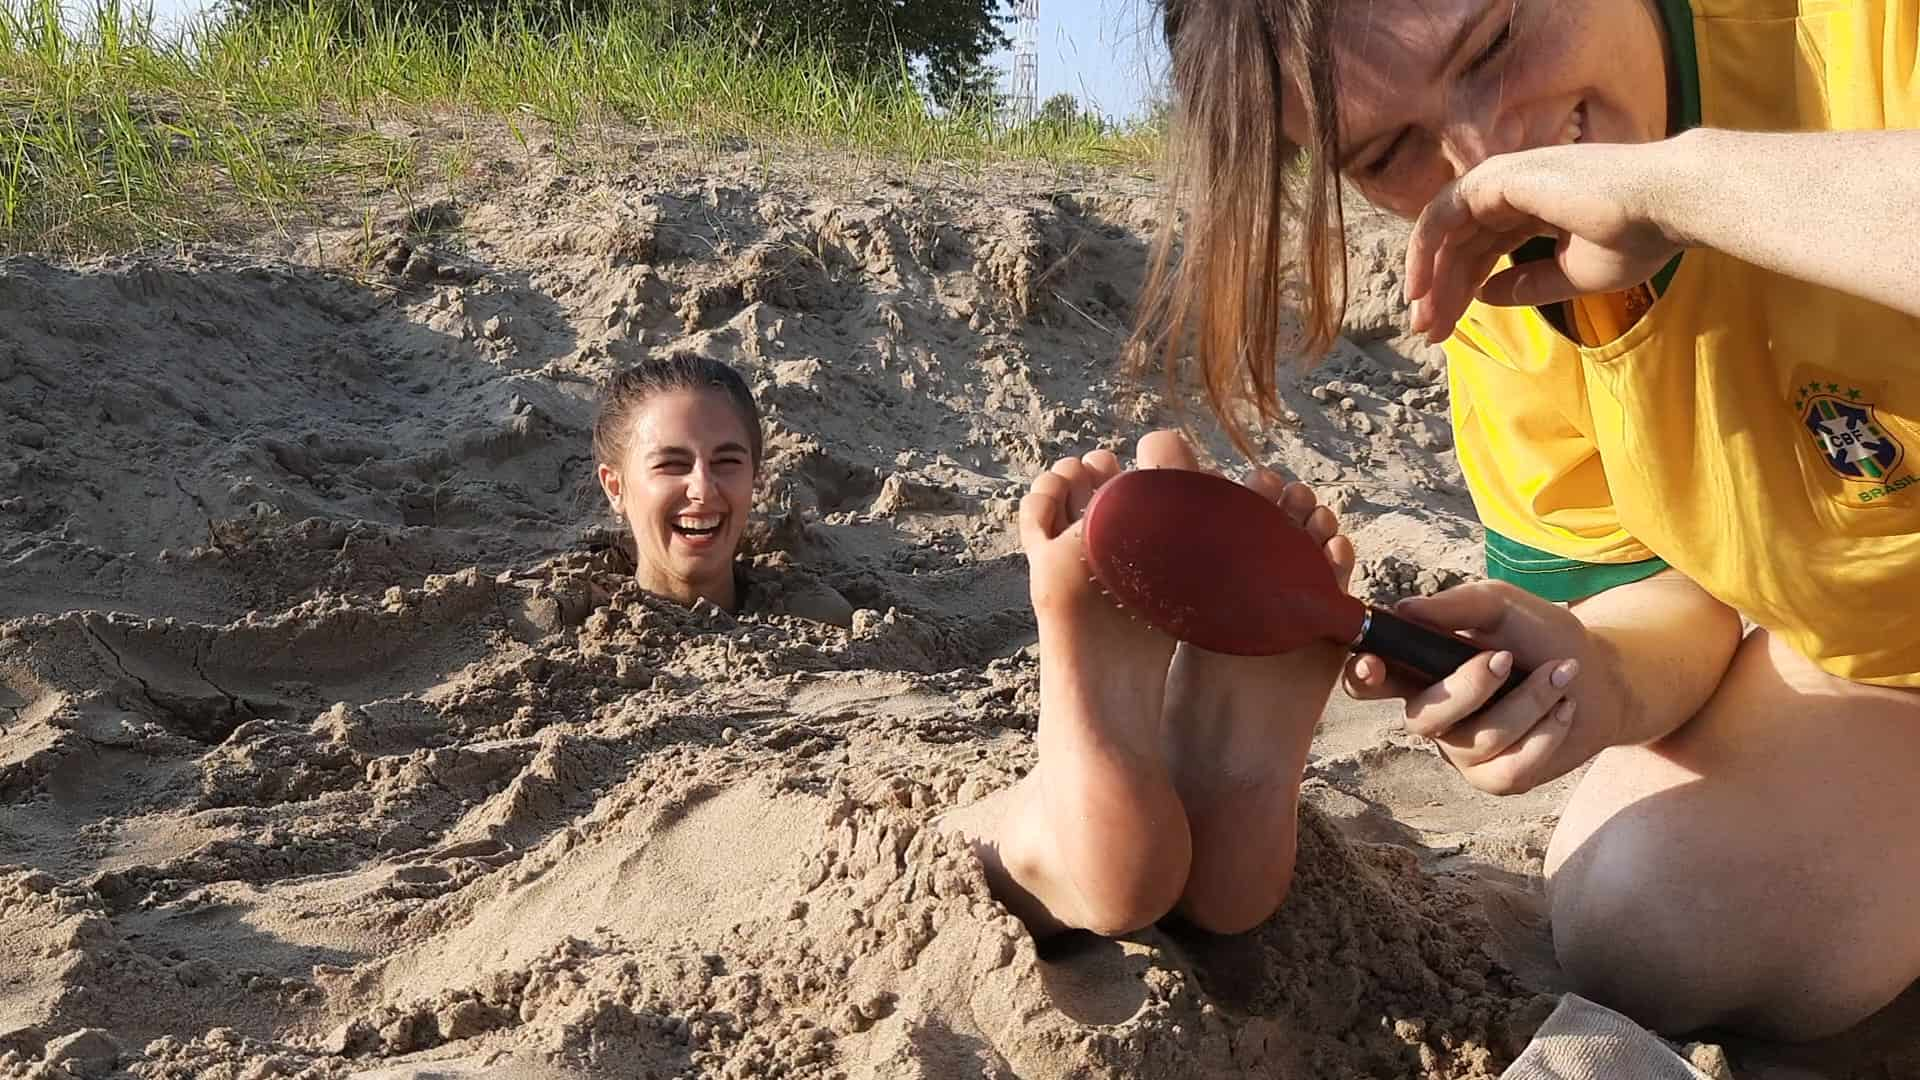 Karine gets revenge on Irina and tickles her feet while buried in public!